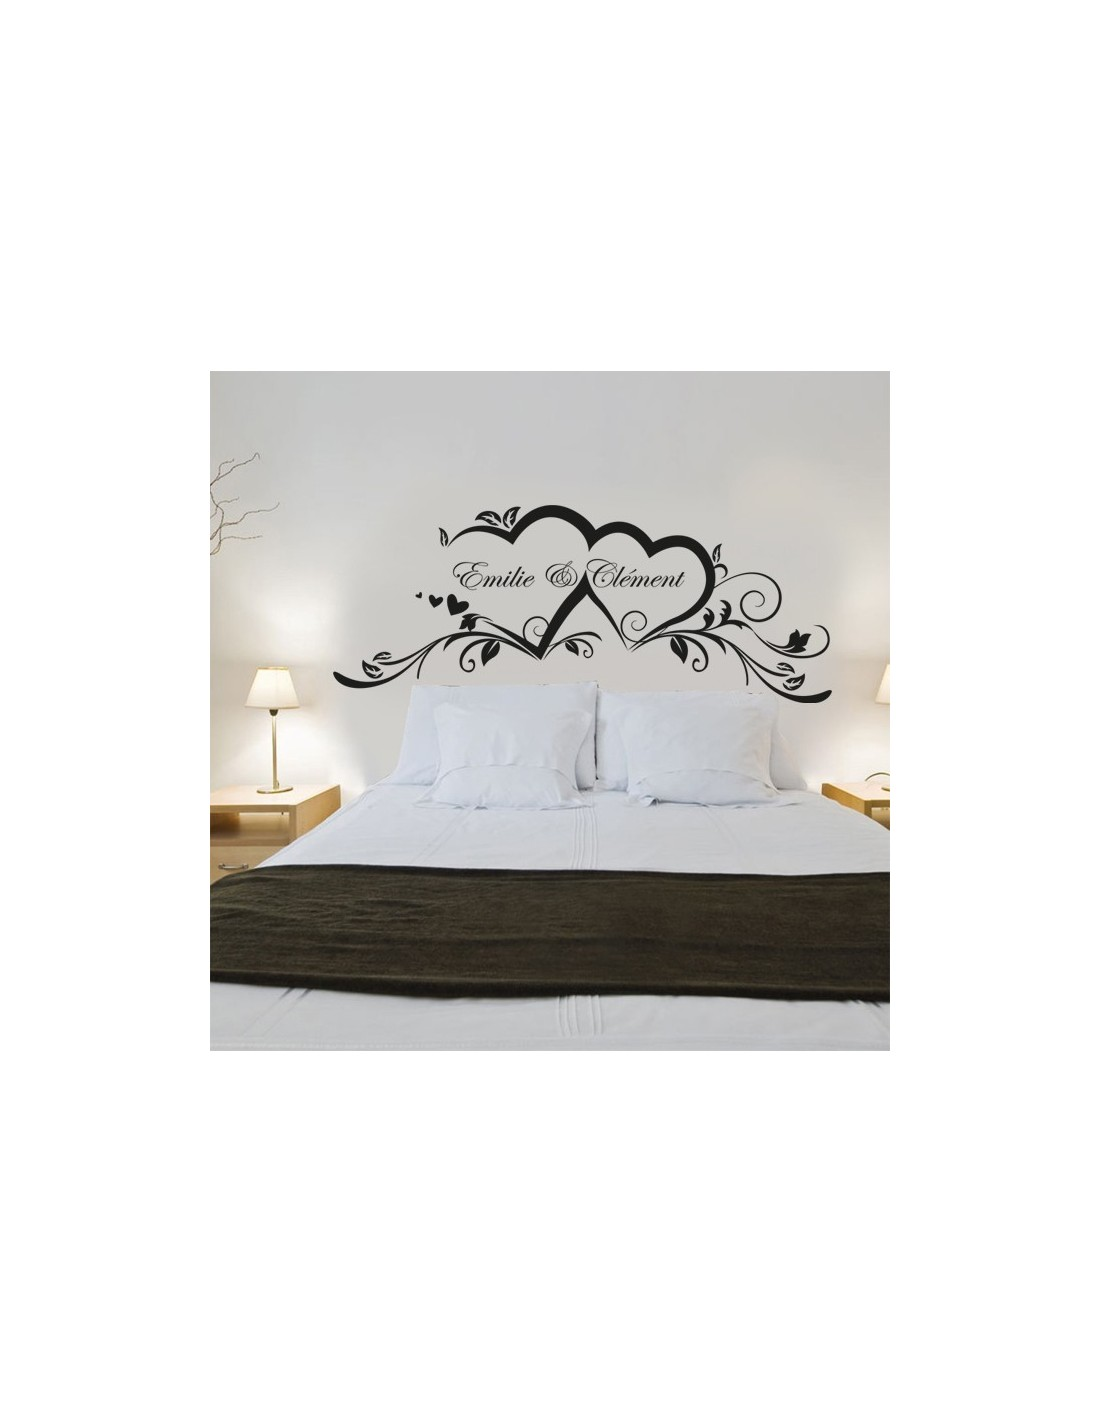 Sticker pr noms personnalis s couple stickers toi moi - Sticker mural personnalise ...